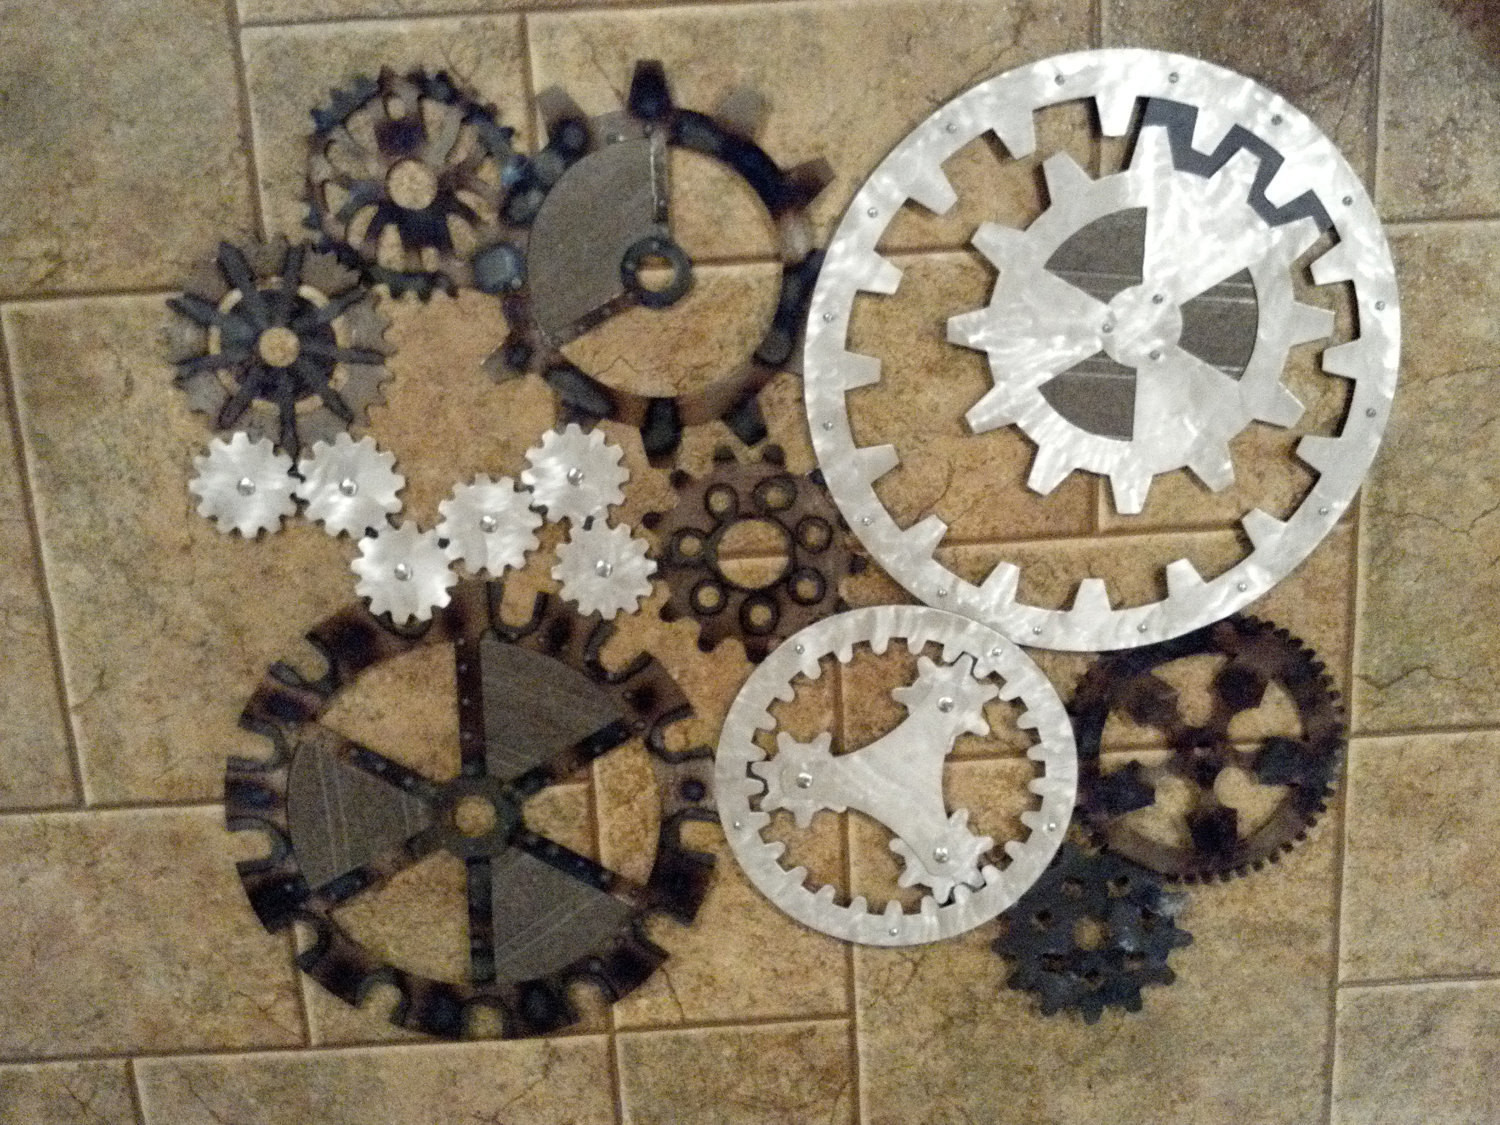 Best ideas about Industrial Wall Art . Save or Pin Gears Art Industrial Steampunk Wall Decor Made to Order Now.